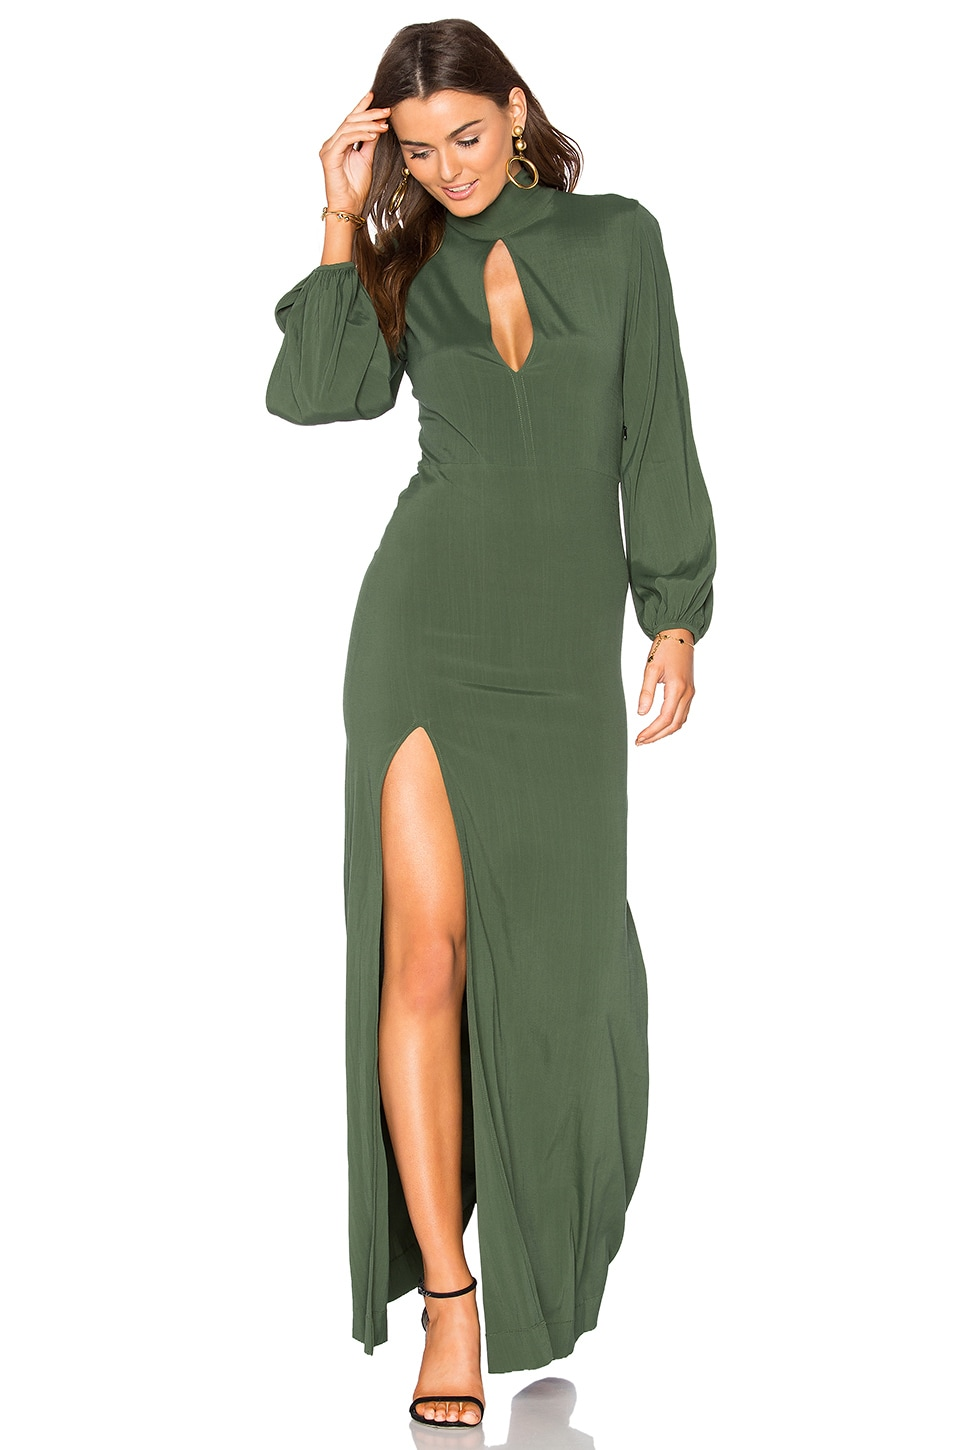 SWF Evelyn Dress in Pine Green